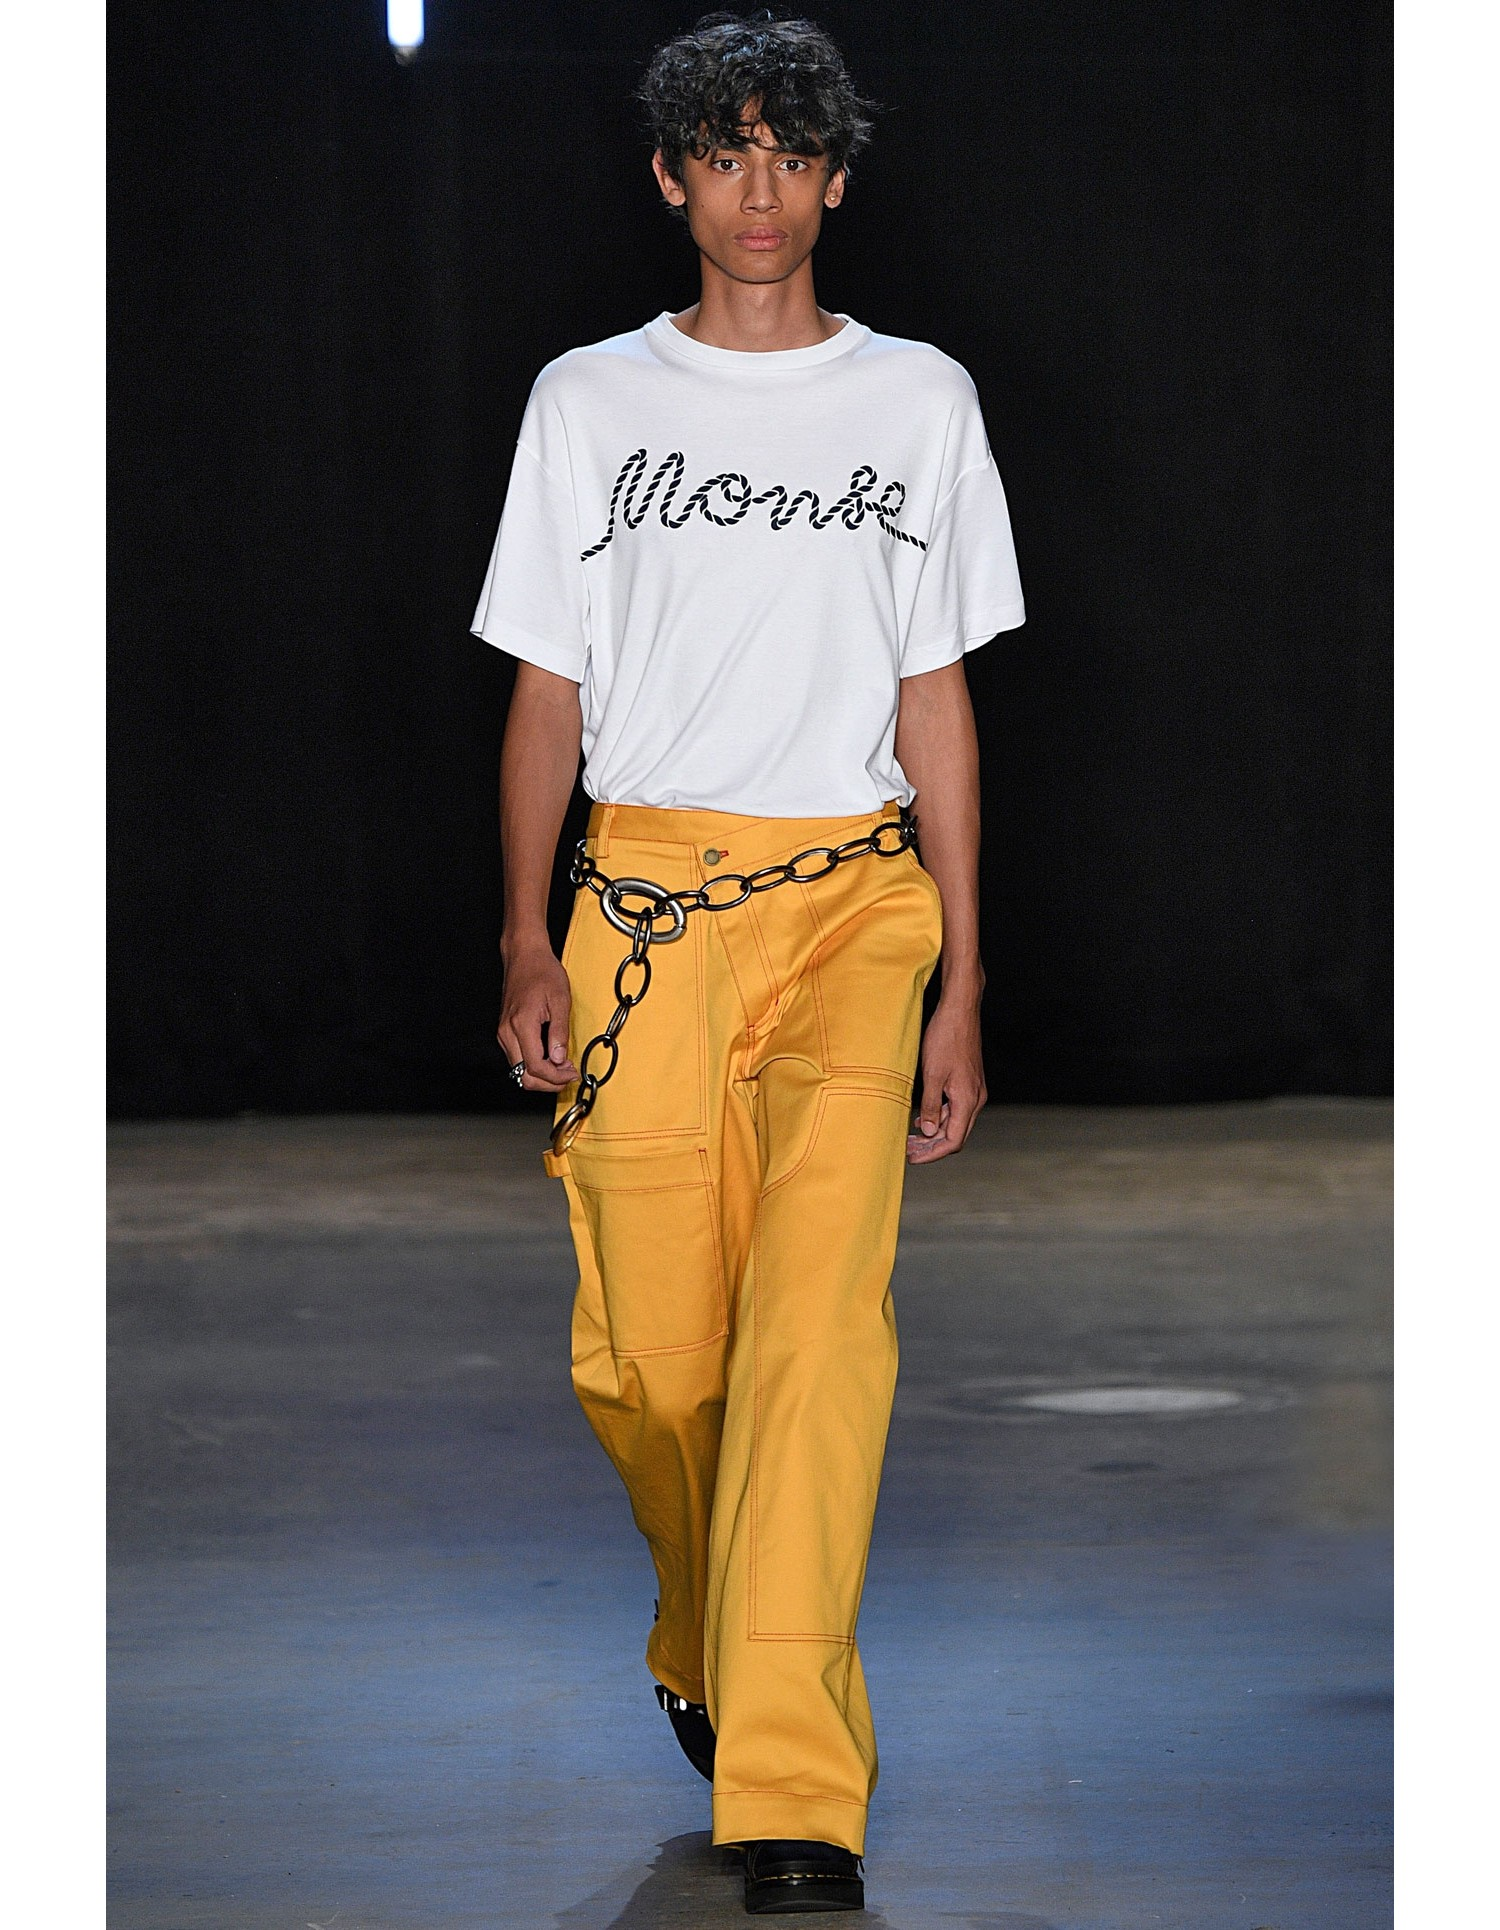 Monse Rope Print Tee in White Front